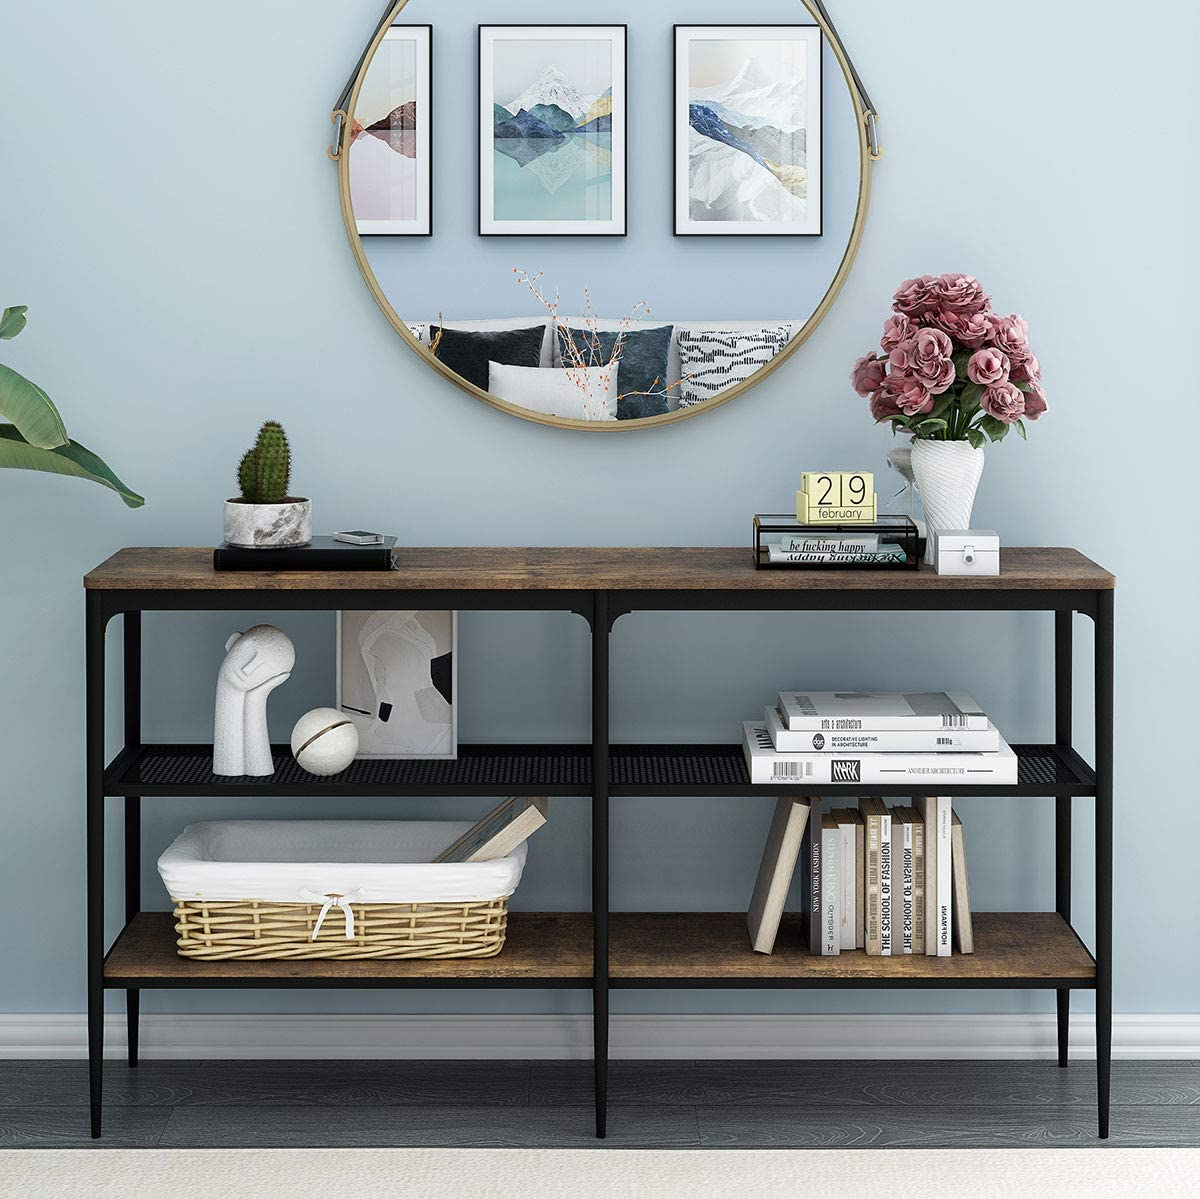 O&K Furniture 3-Tier Industrial Entryway Console Table, Narrow Long Sofa Table with Storage Shelves, Hallway Hall Table for Living Room, Vintage Brown